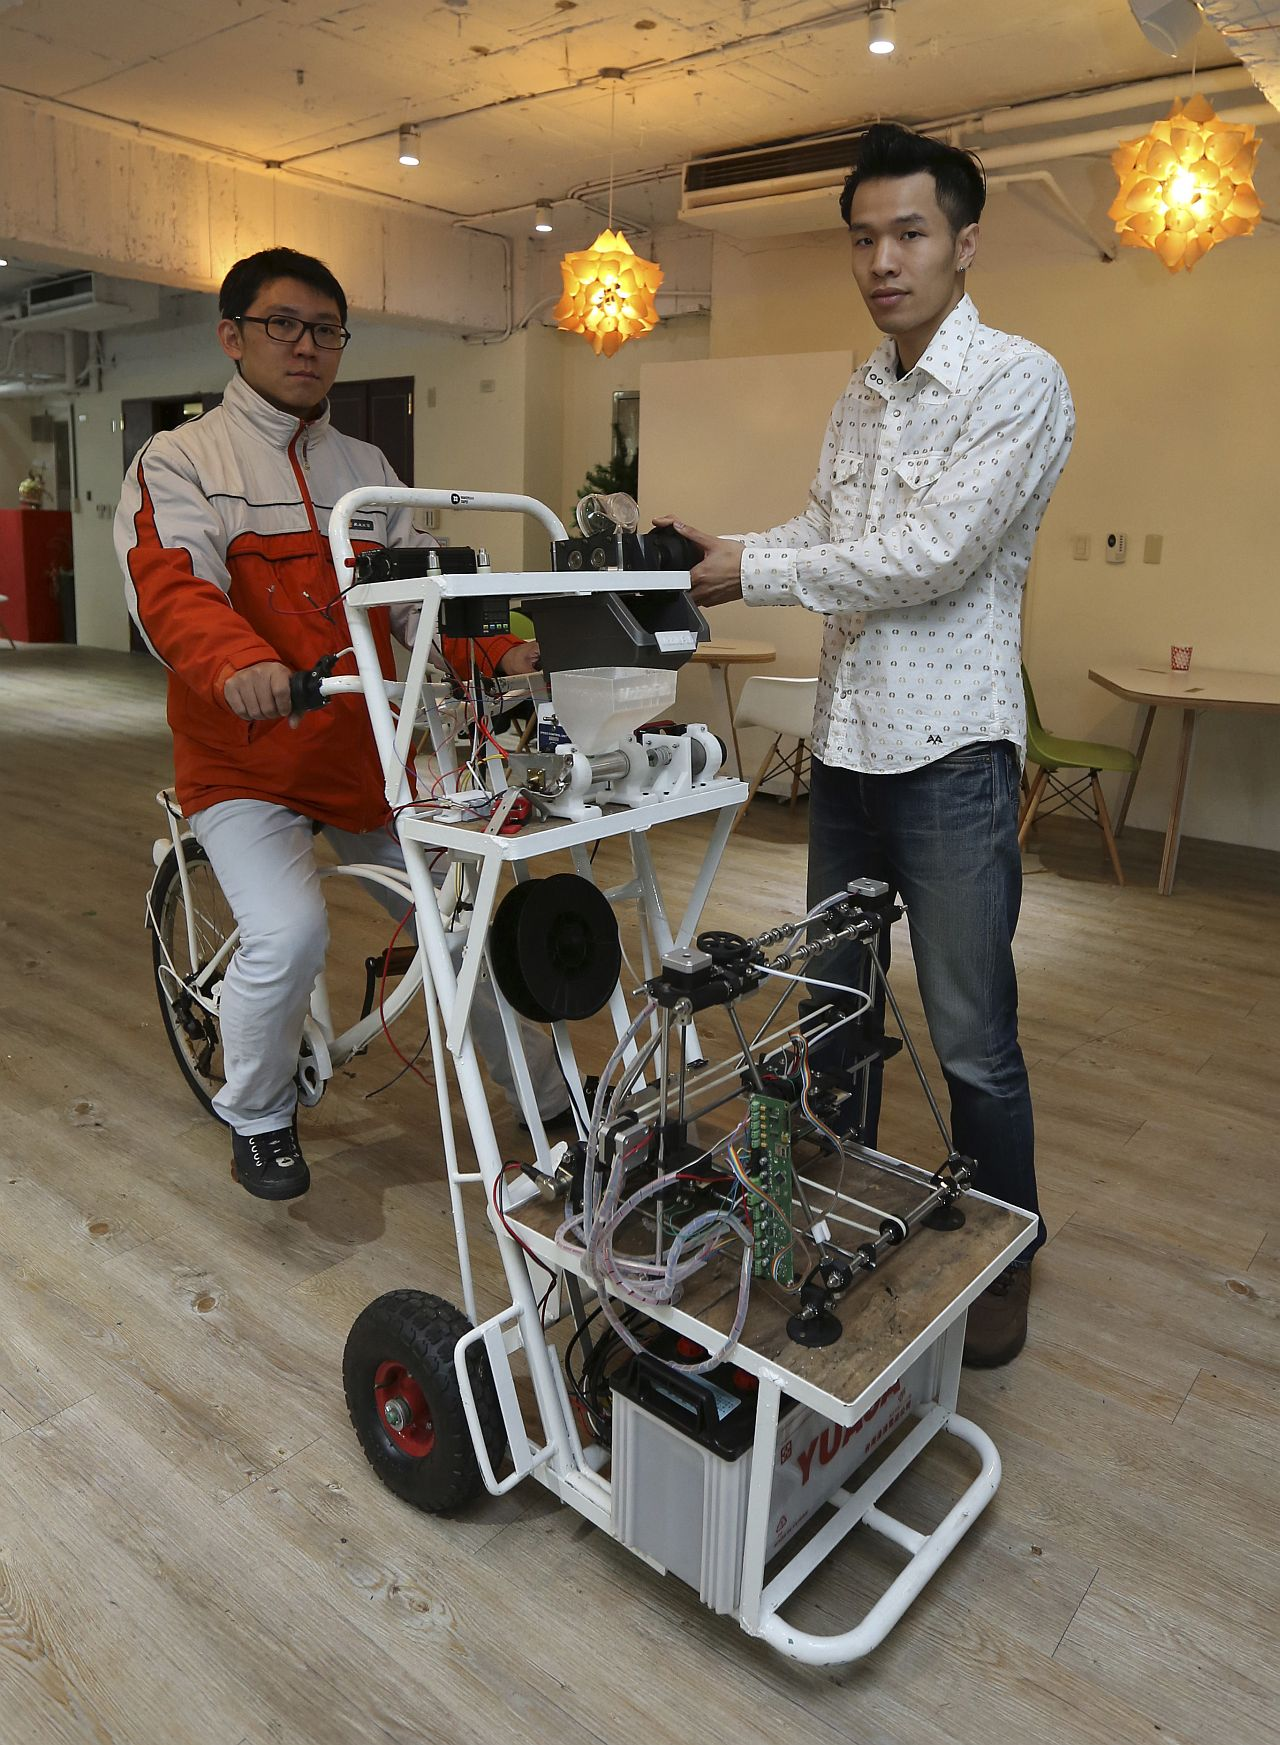 COOL CONTRAPTION: Kamm Kai-yu (right), co-founder of boutique design studio Fabraft, displaying a bicycle with a 3D printer installed in front, in Taipei. — Reuters